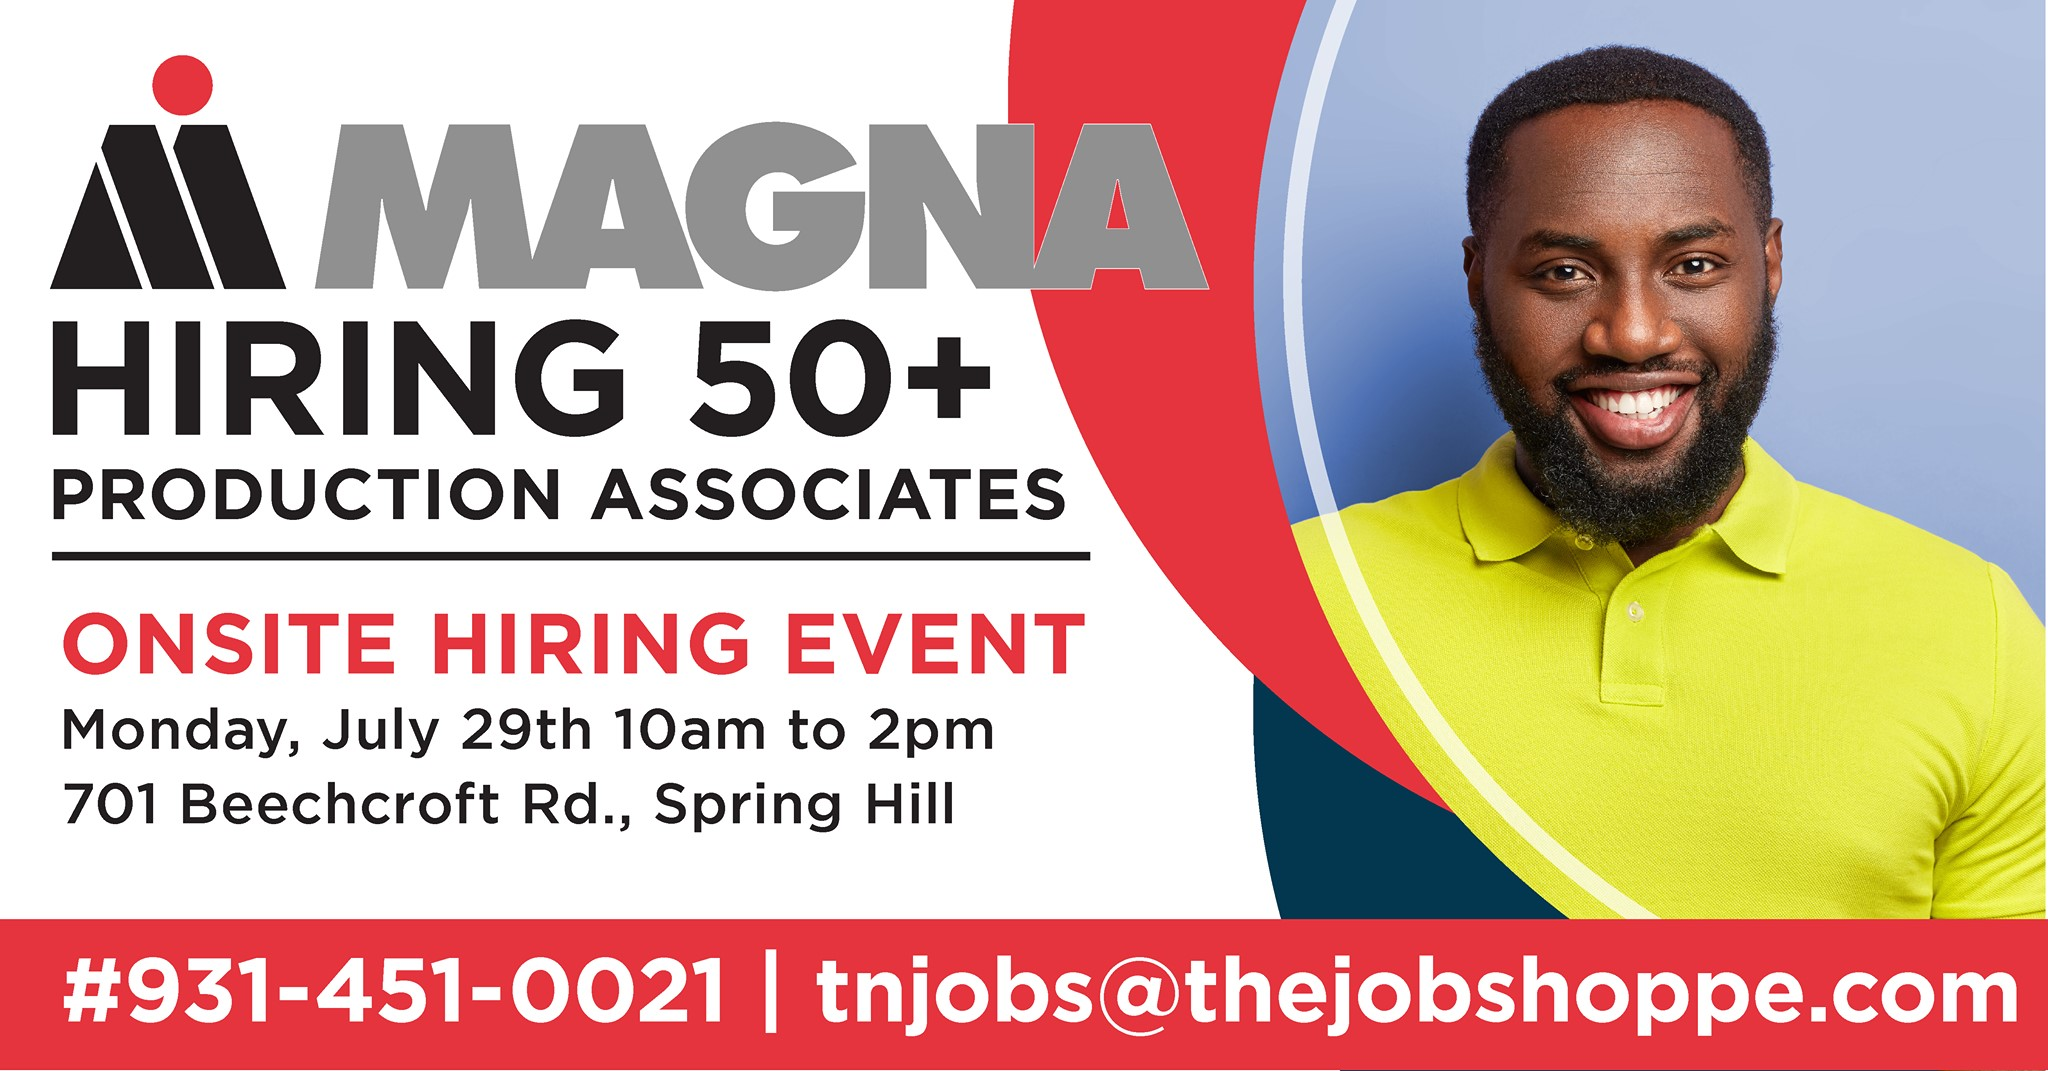 MAGNA in Spring Hill looking to hire more than 50 employees during hiring event